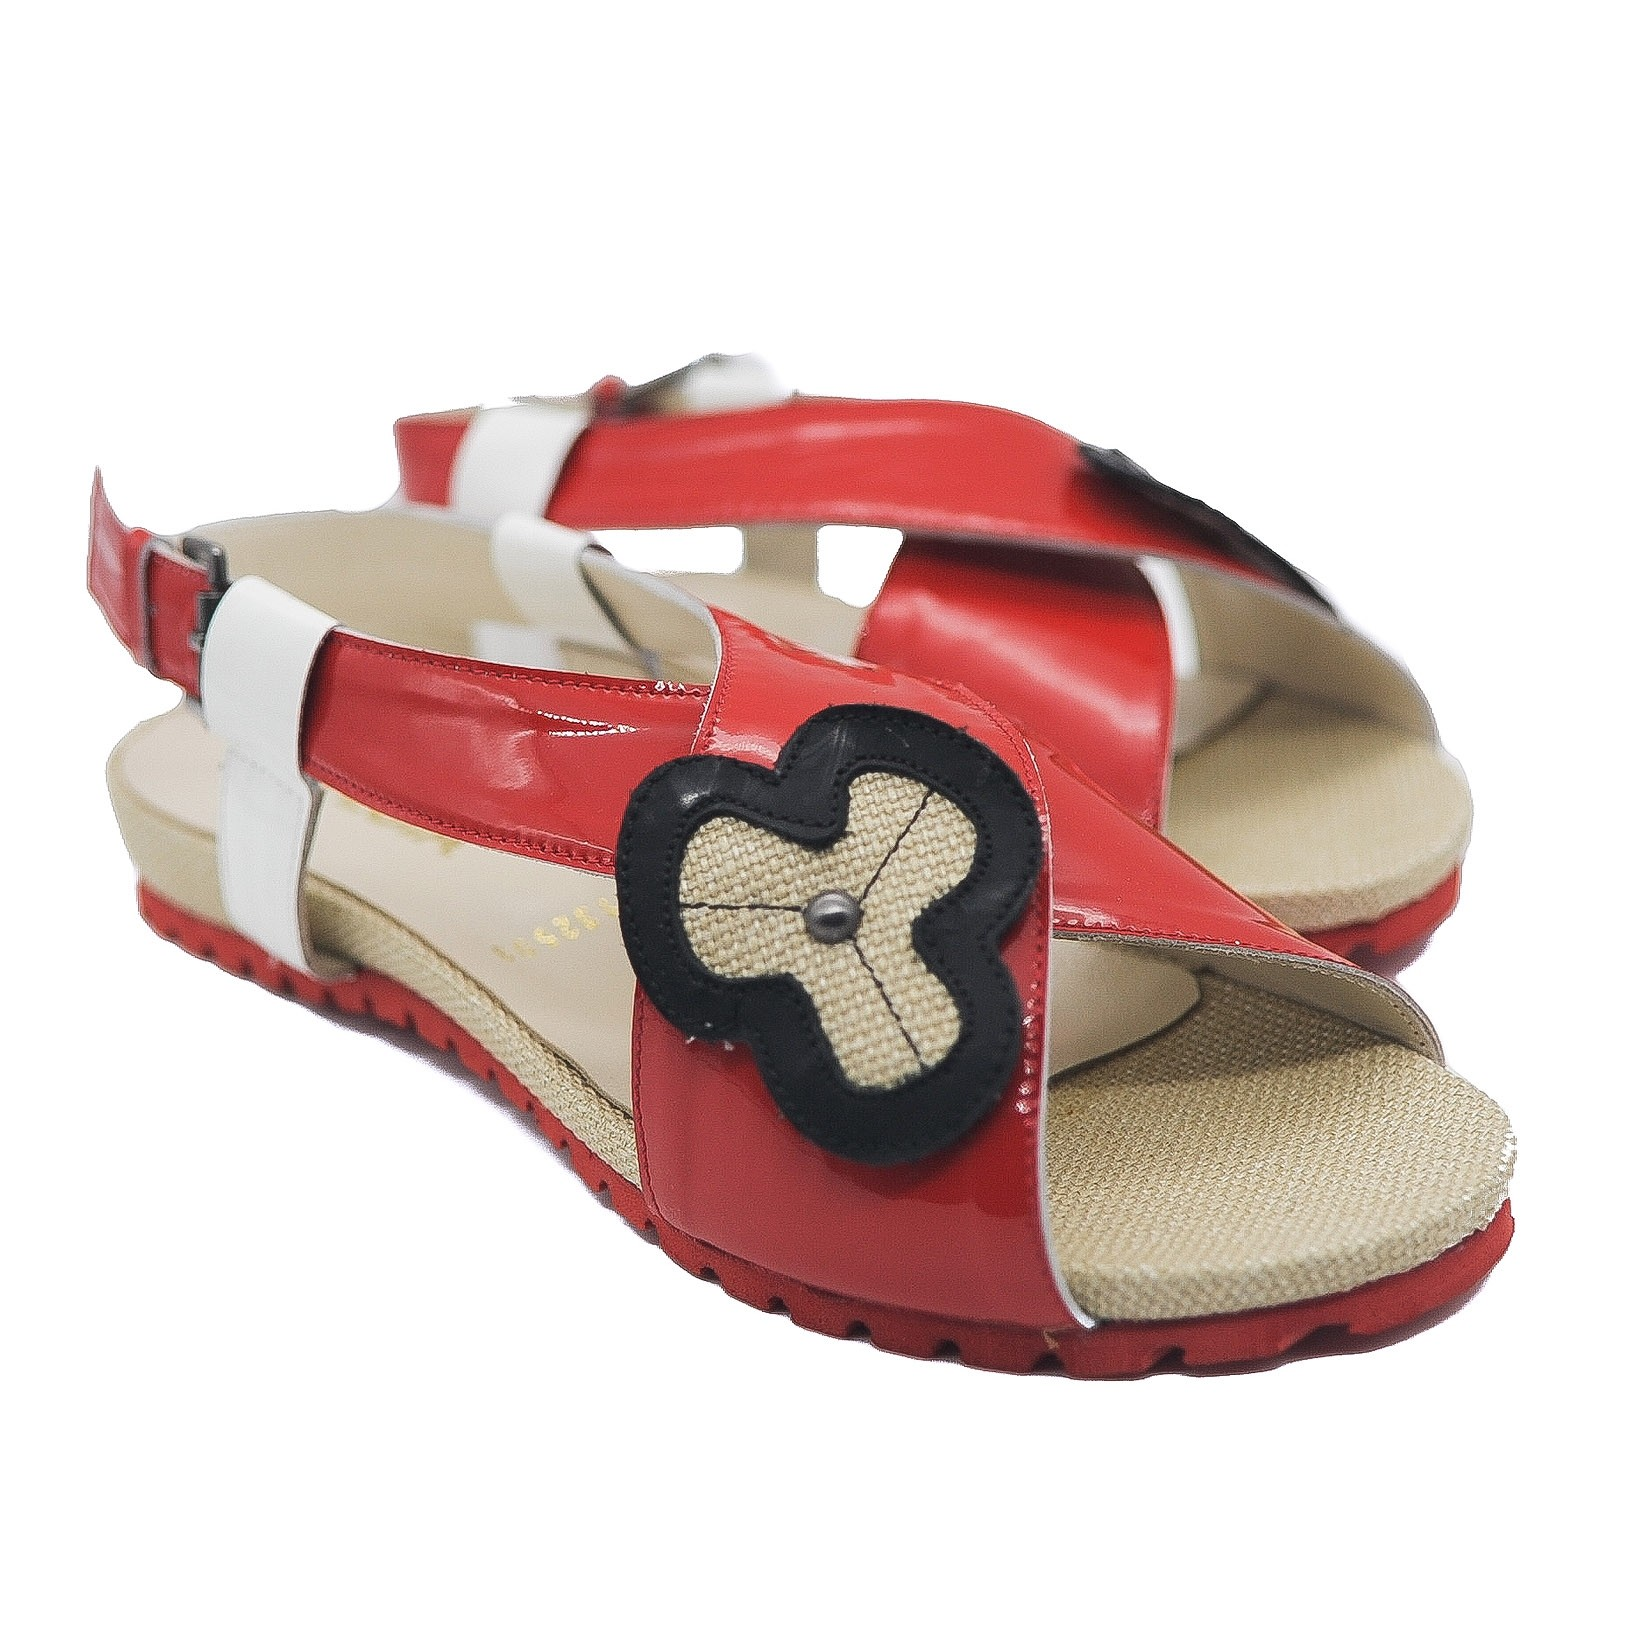 Pegia Ladies Leather Patent Red Camper Sandals with Crossover Straps and Flower